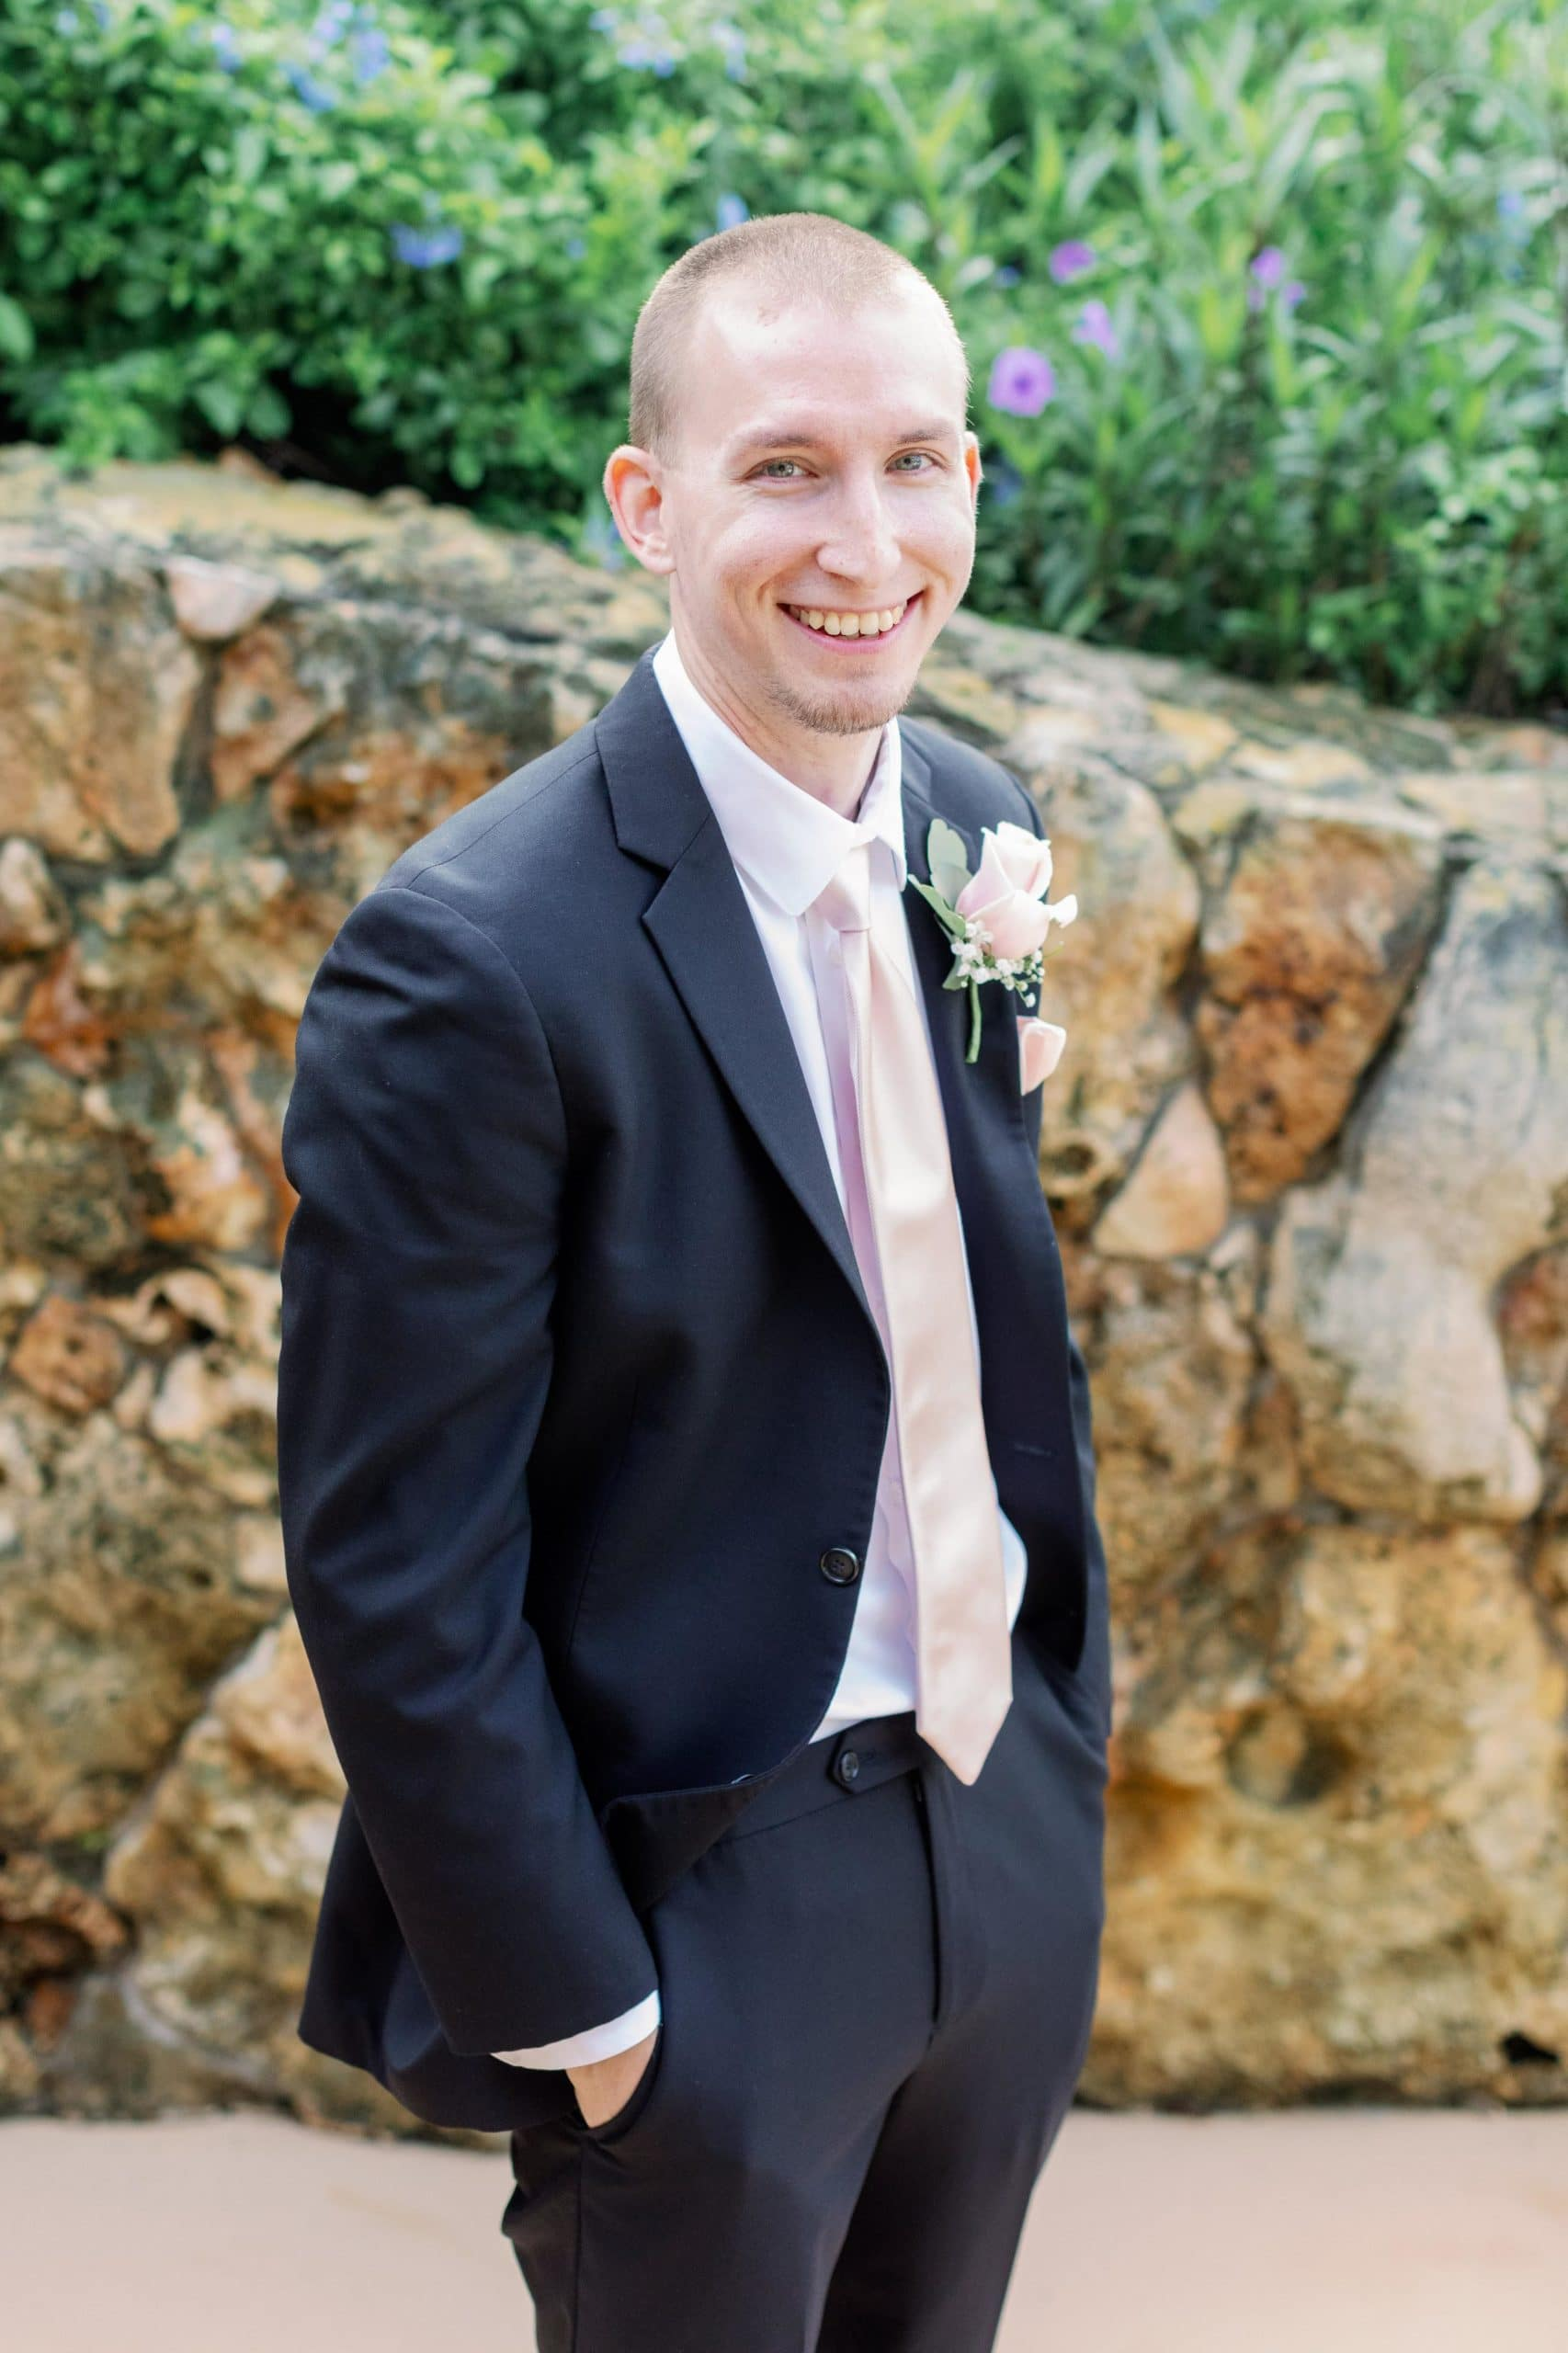 Groom in tux in front of stone wall